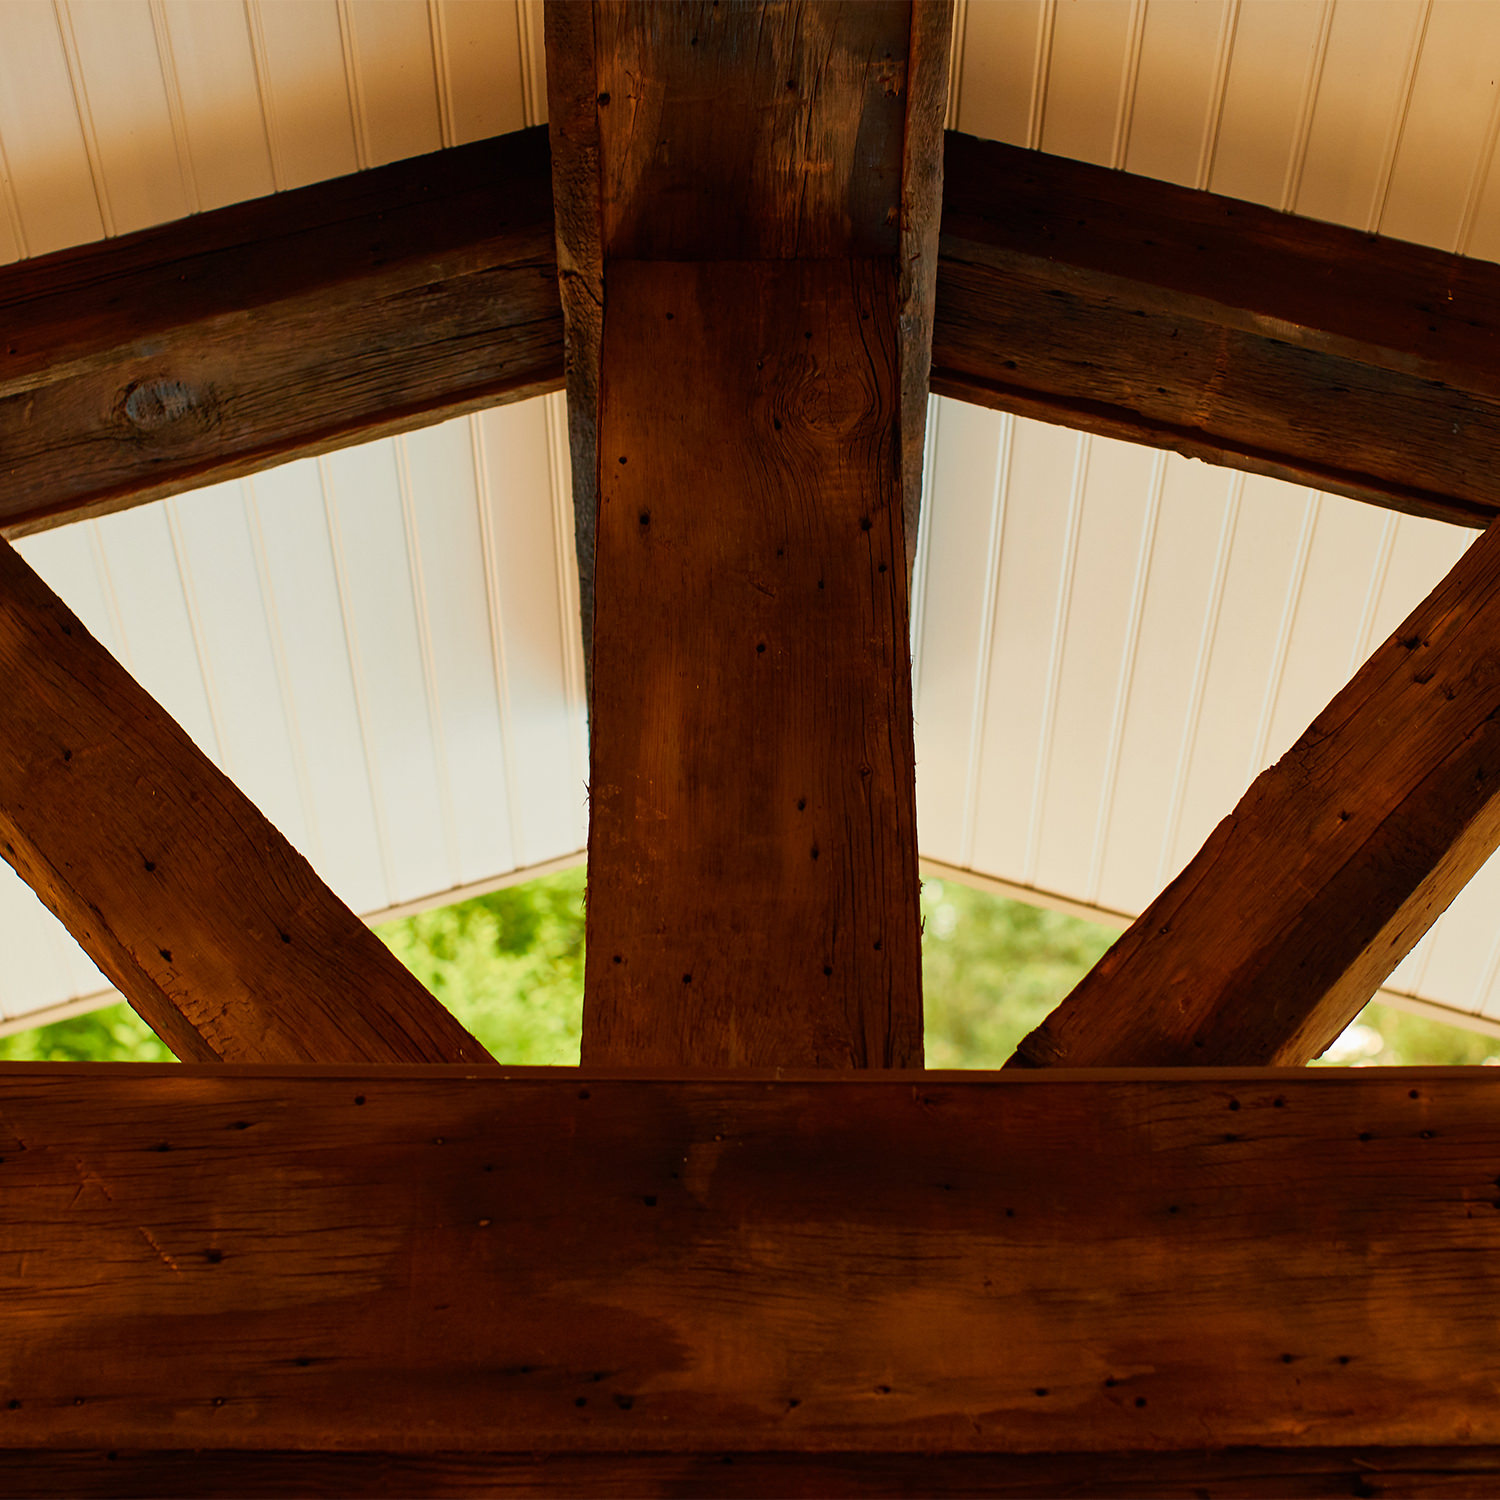 This authentic barnwood cladding shows original nail holes and wear, it's the perfect complement to the clean roof lines. Rustic meets contemporary!